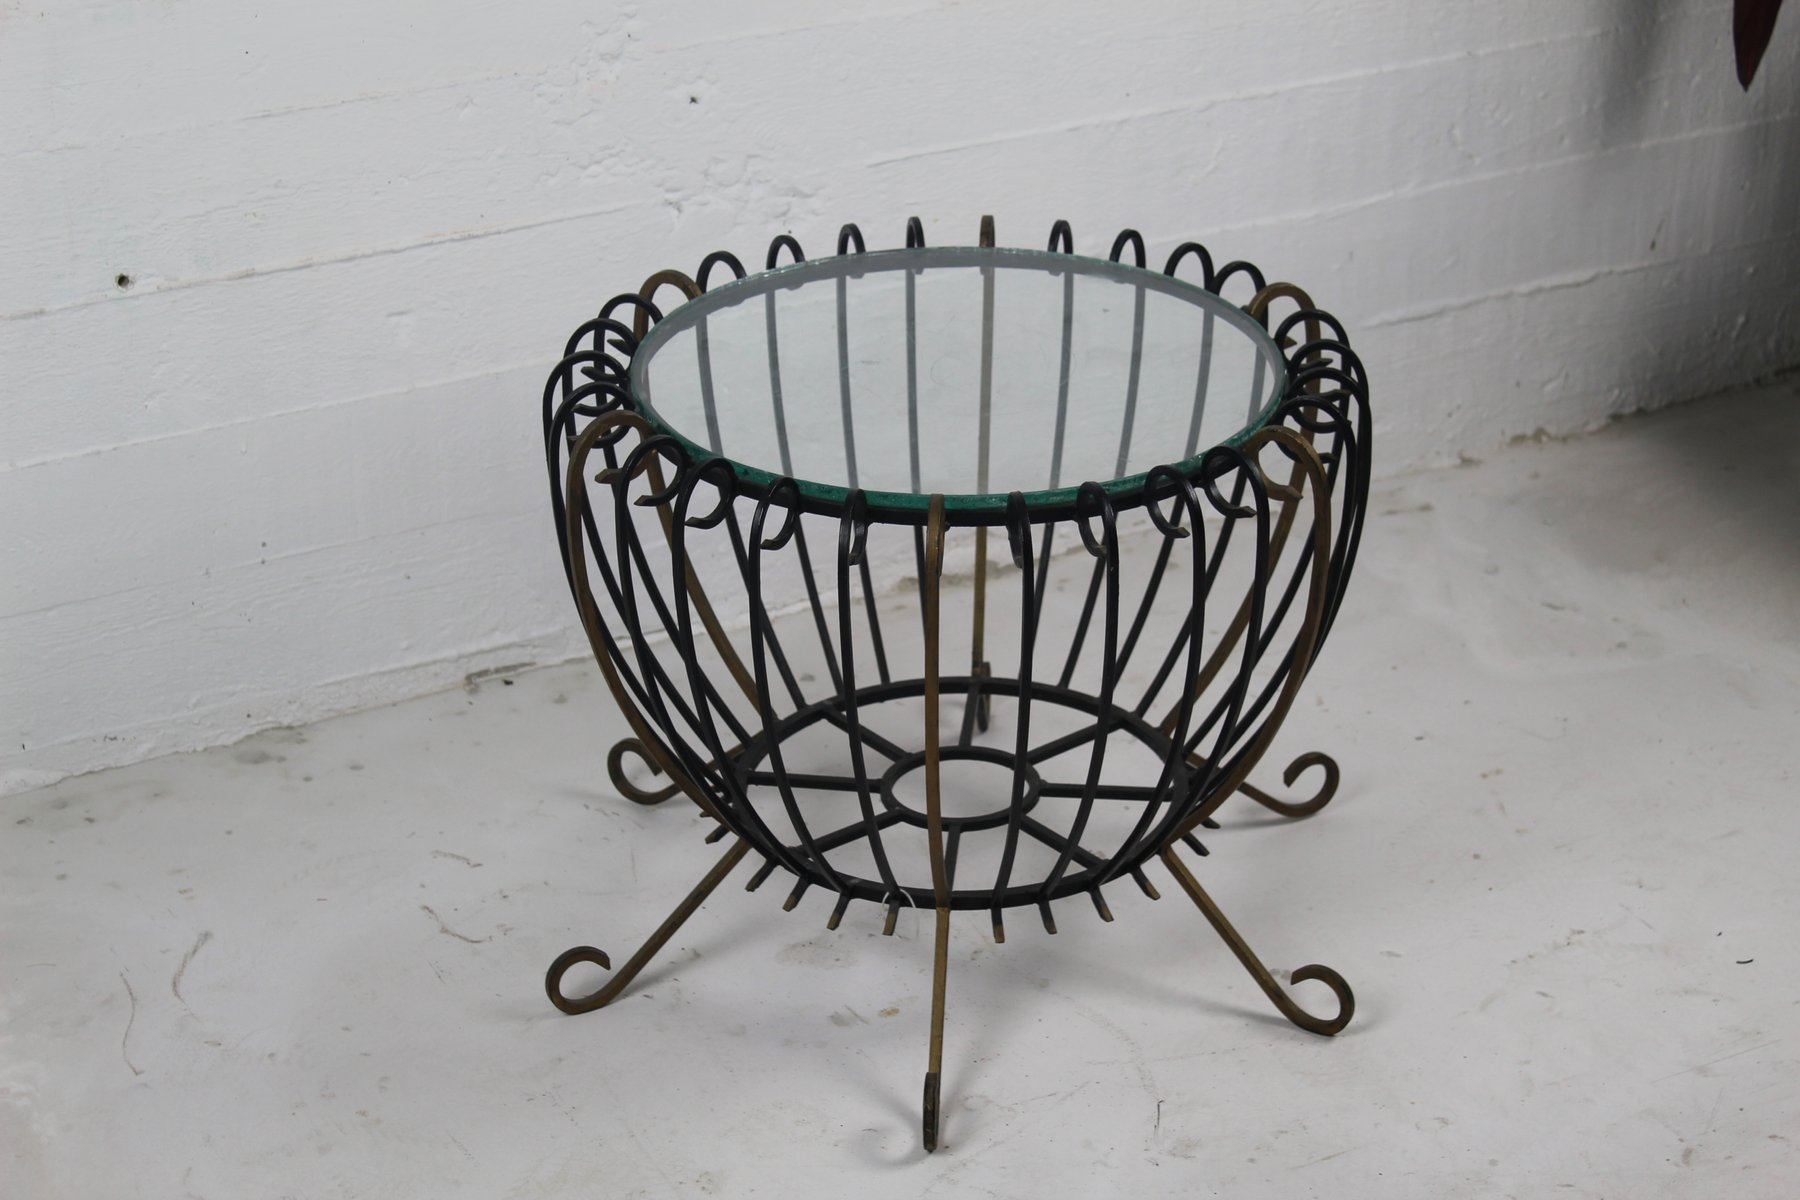 Vintage wrought iron coffee table 4 592 00 price per piece